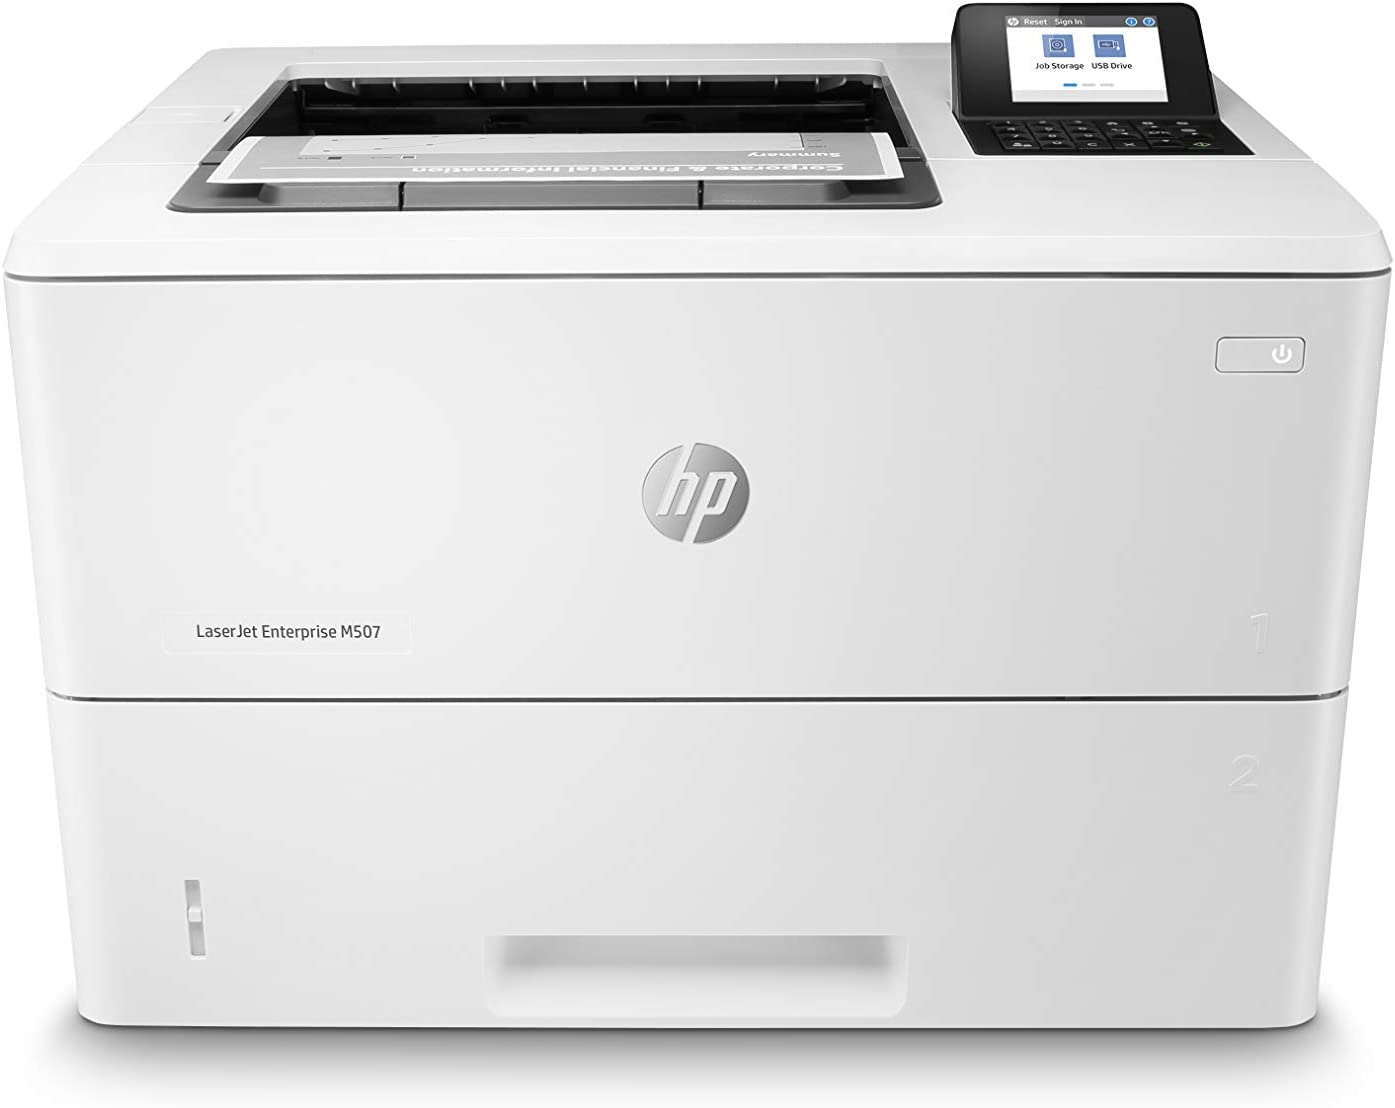 HP LaserJet Enterprise M507dn with One-Year, Next-Business Day, Onsite Warranty (1PV87A),White